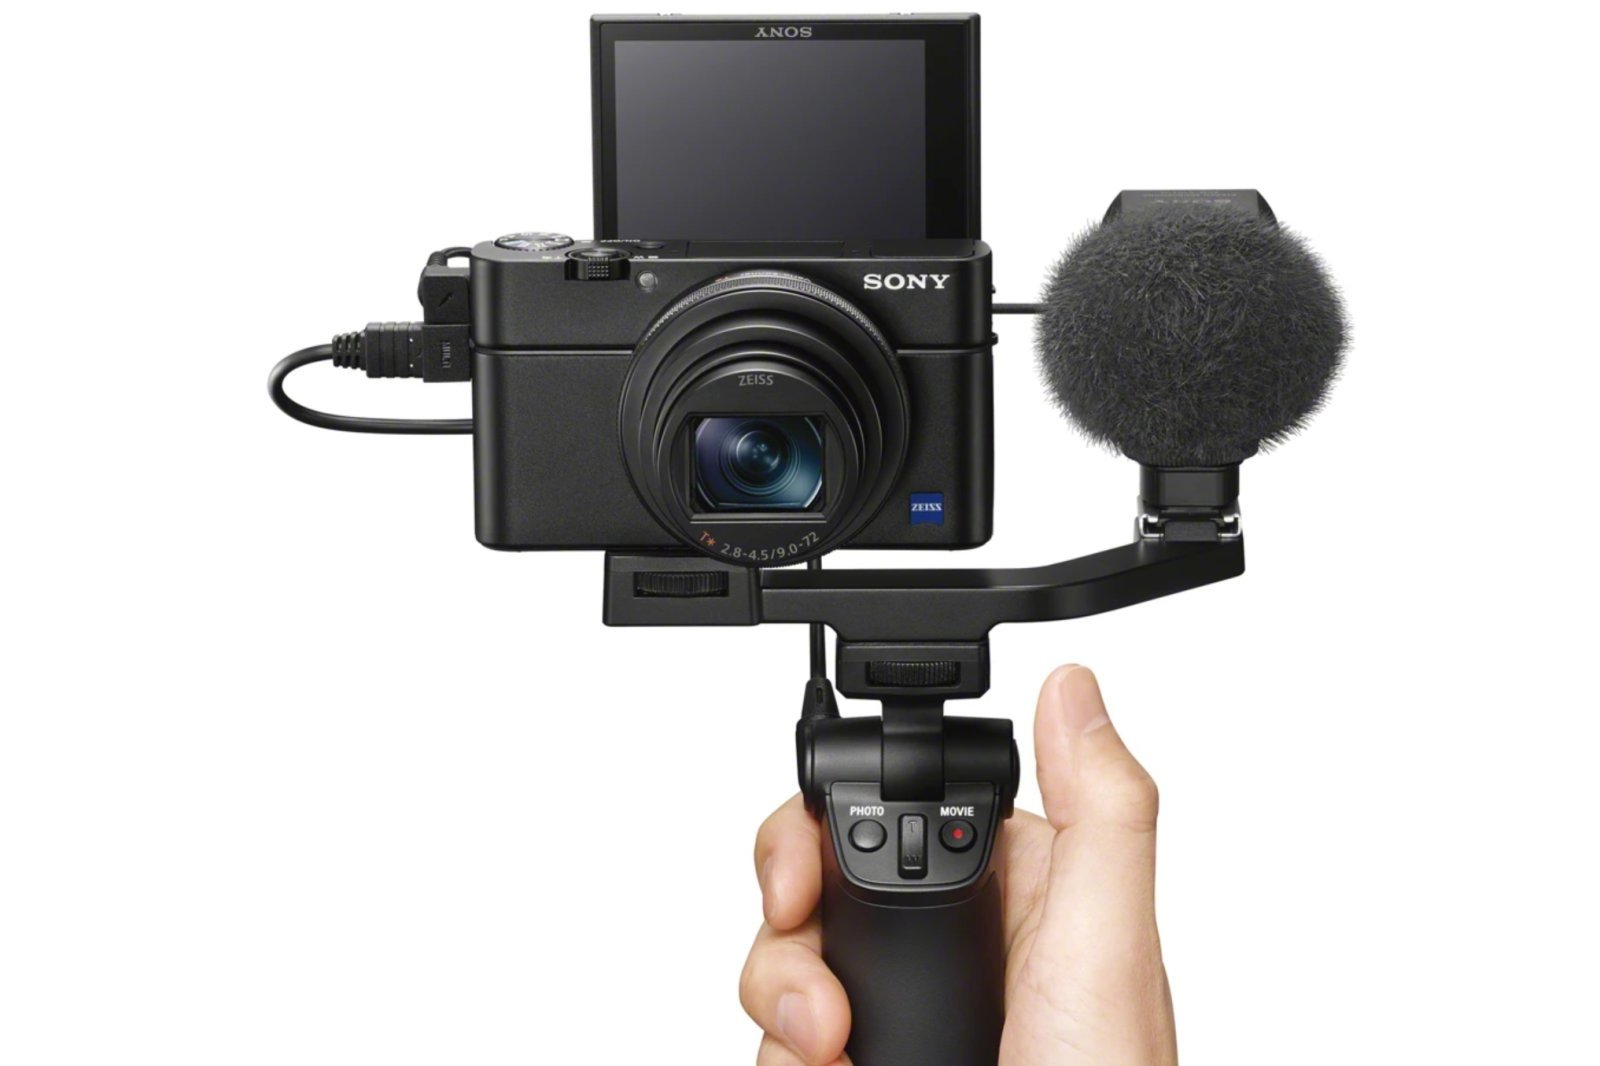 Sony DSC-RX100 VII Vlogging Kit